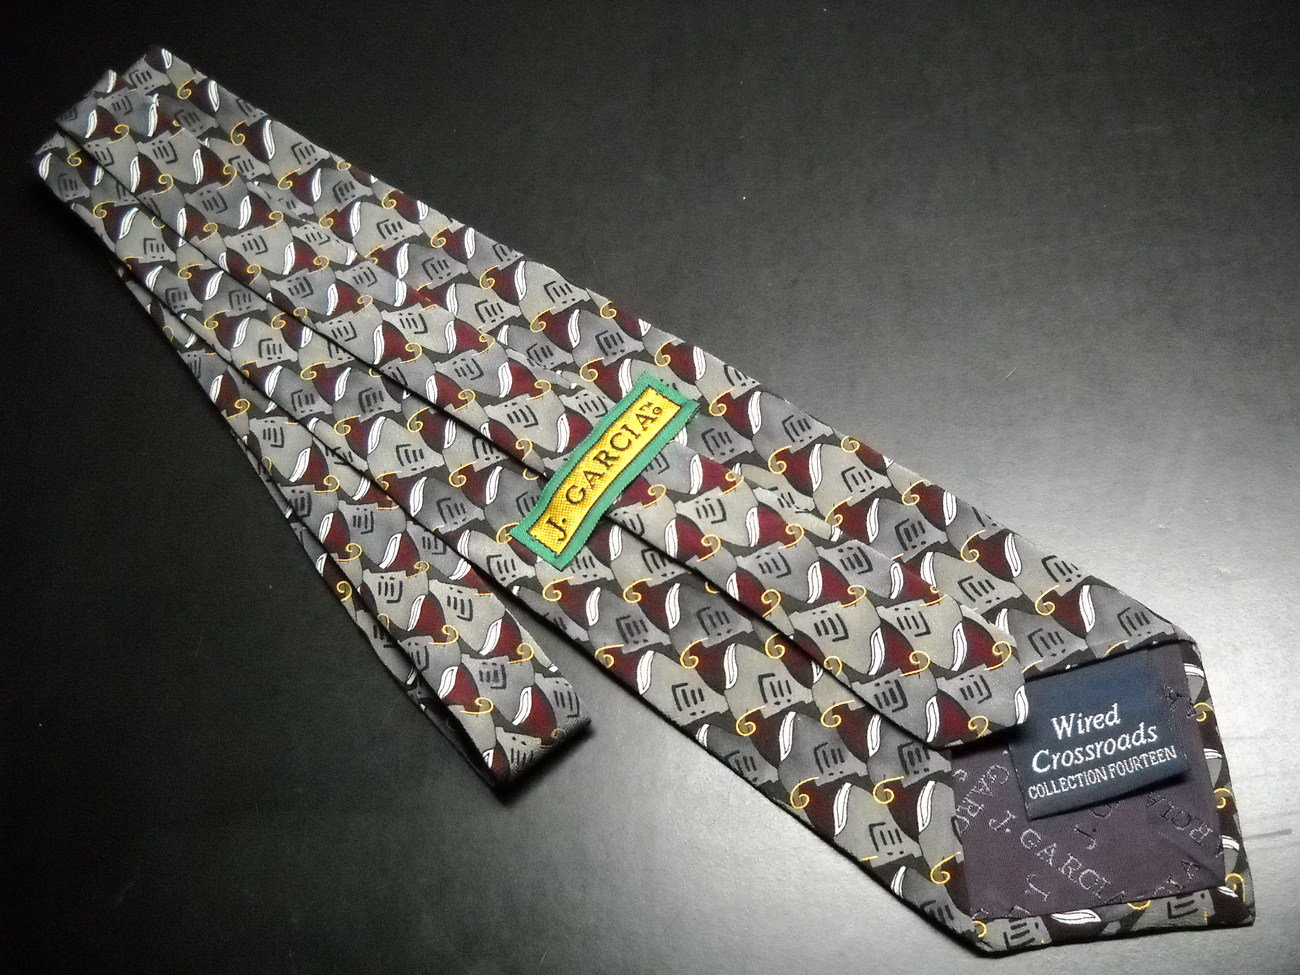 J Garcia Neck Tie Collection 14 Wired Crossroads Dark Maroon and Greyish Browns